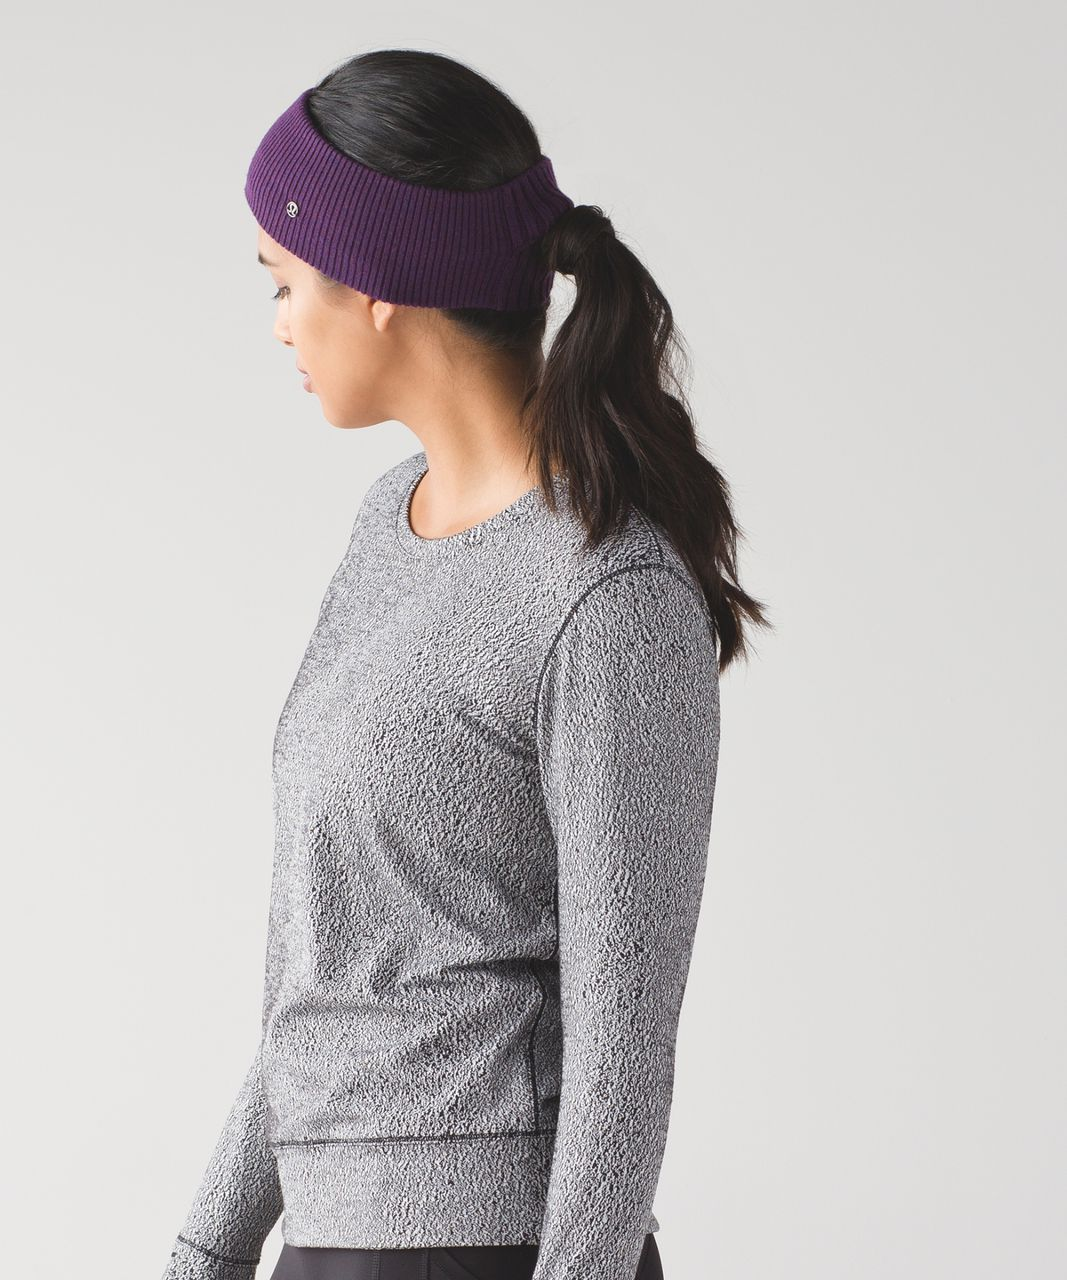 Lululemon Runderland Ear Warmer - Heathered Darkest Magenta